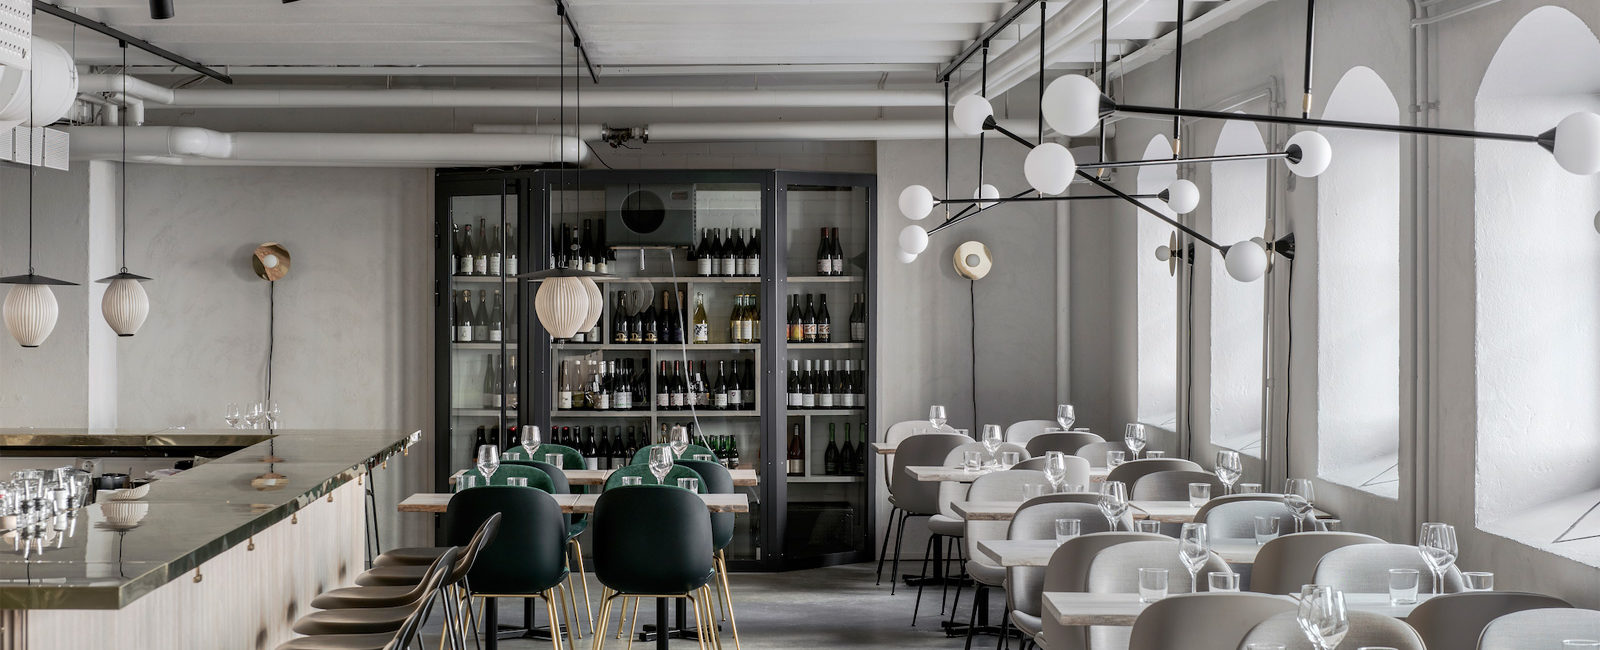 Sustainable cooking inspires the natural color palette of the Maannos restaurant in Helsinki.